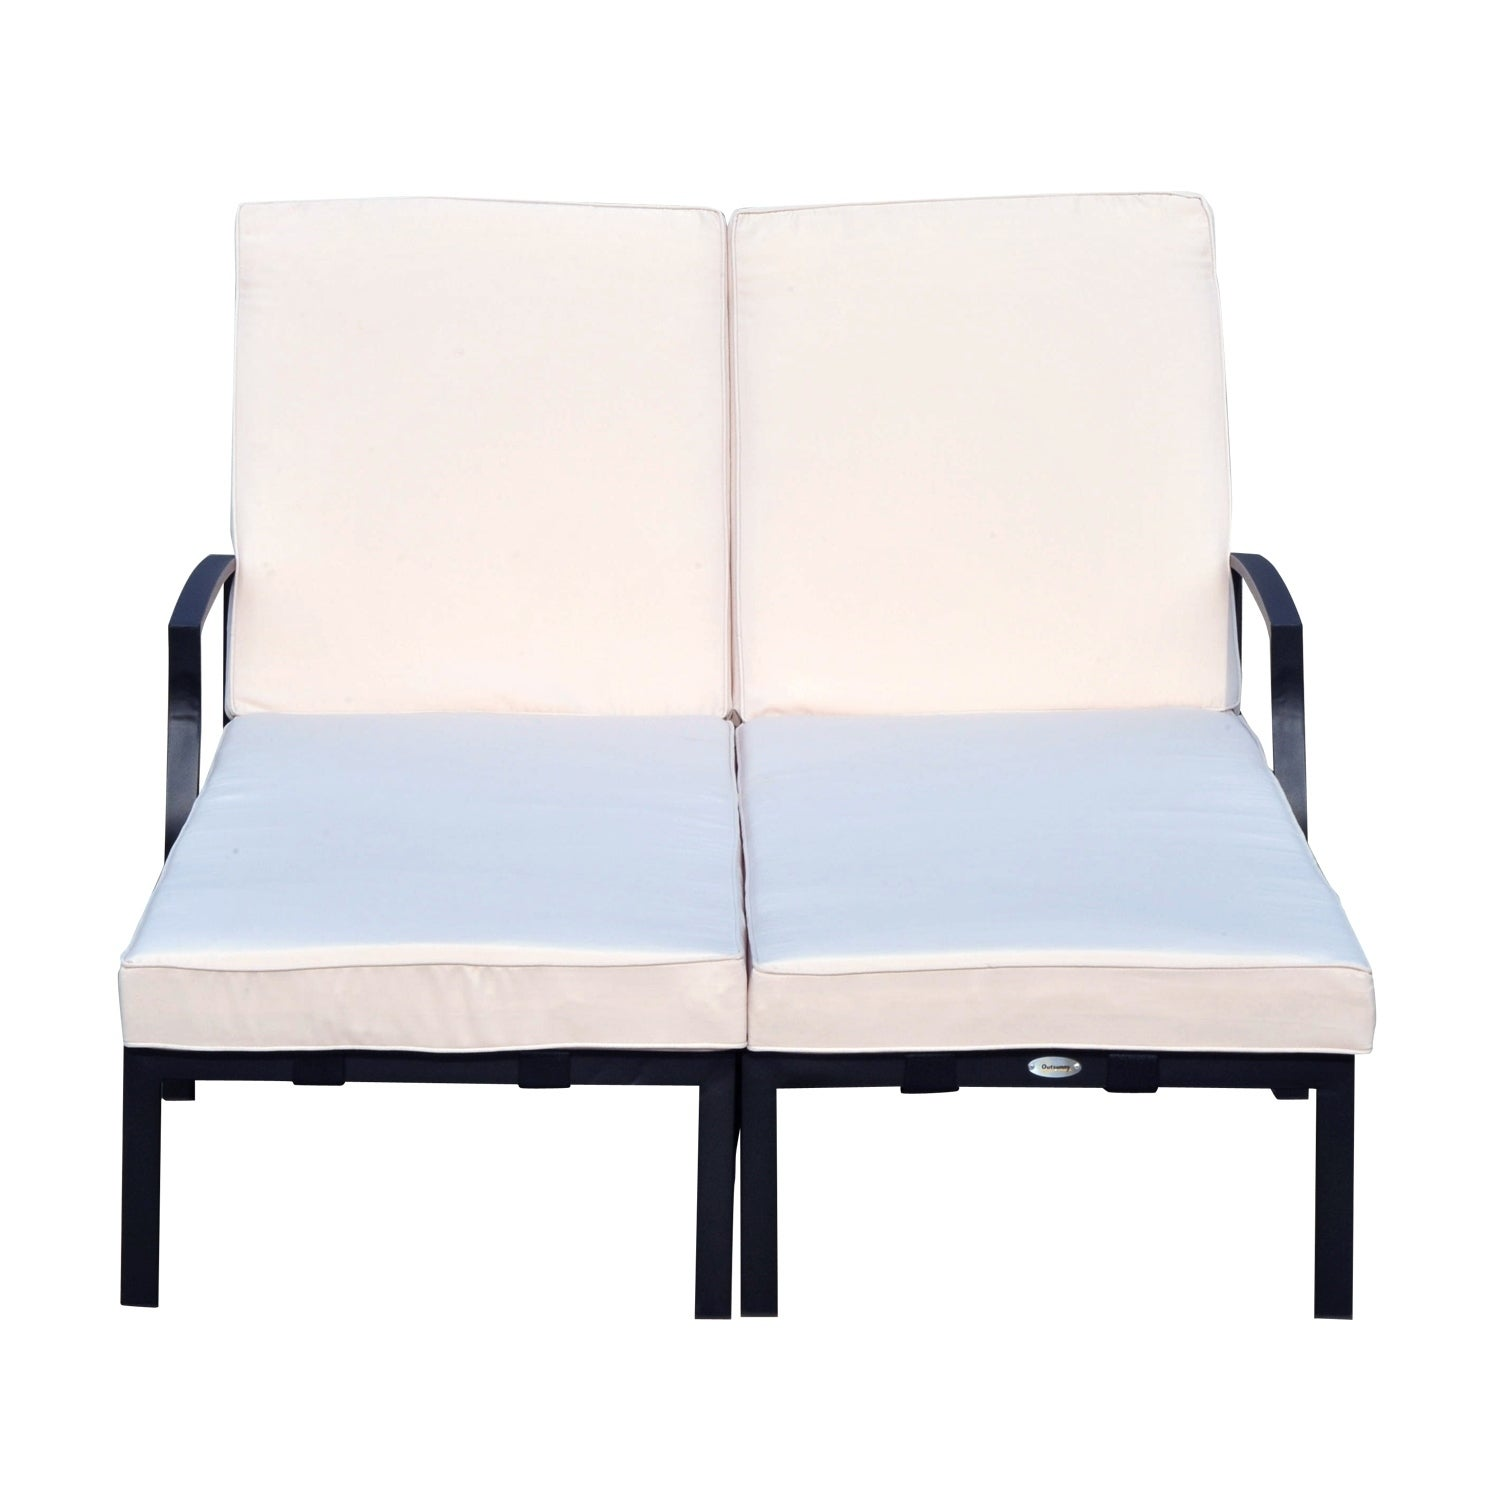 Outsunny 74 Reclining Outdoor Double Lounge Chair Cream Black Free Shipping Today 18126451